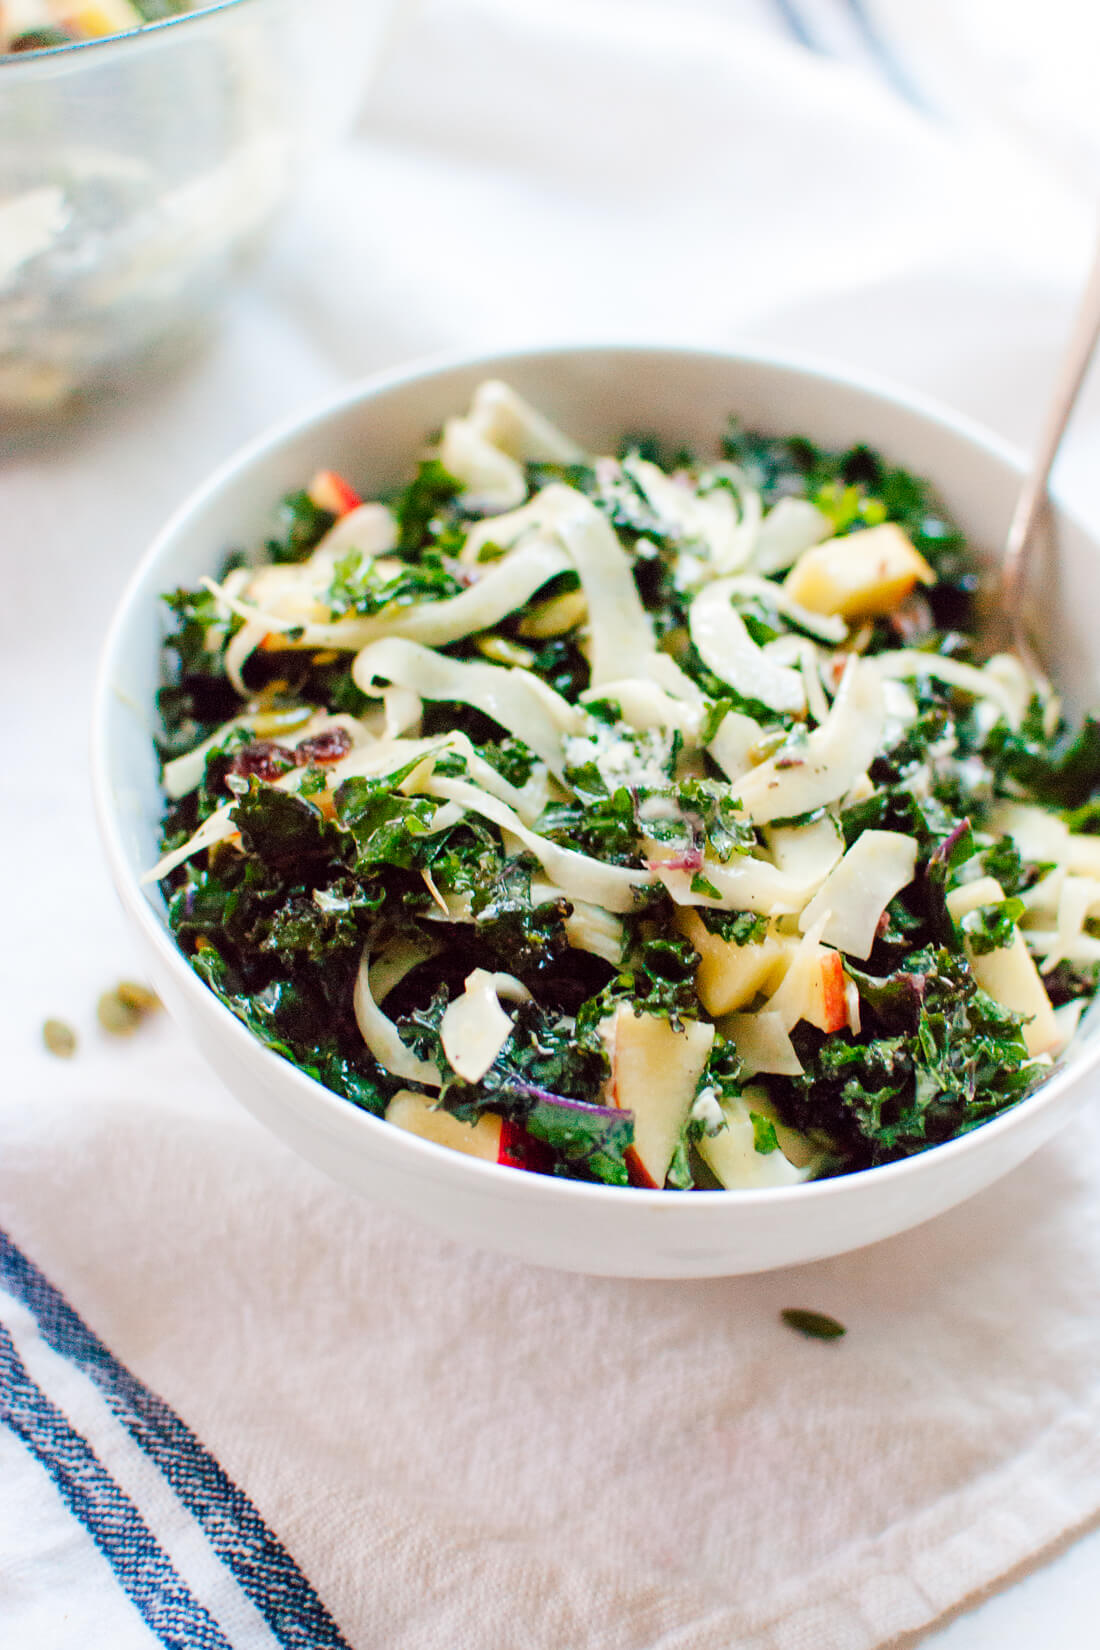 Fennel and honeycrisp apple kale salad